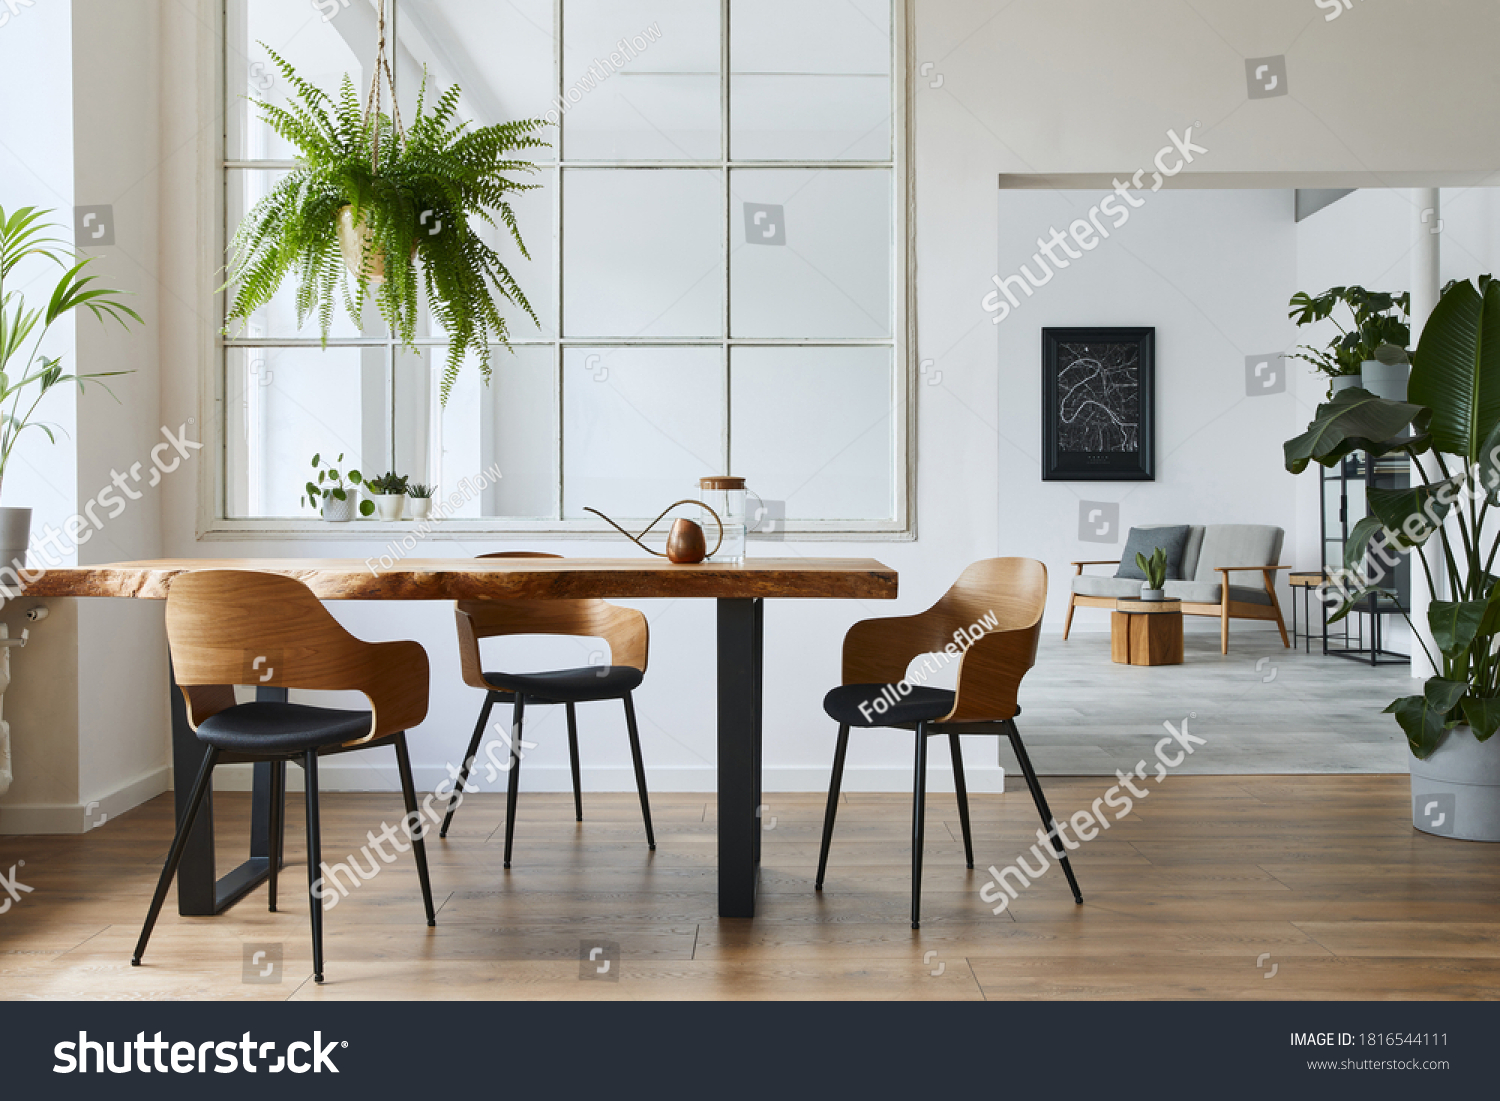 Stylish and botany interior of dining room with design craft wooden table, chairs, a lof of plants, window, poster map and elegant accessories in modern home decor. Template. #1816544111